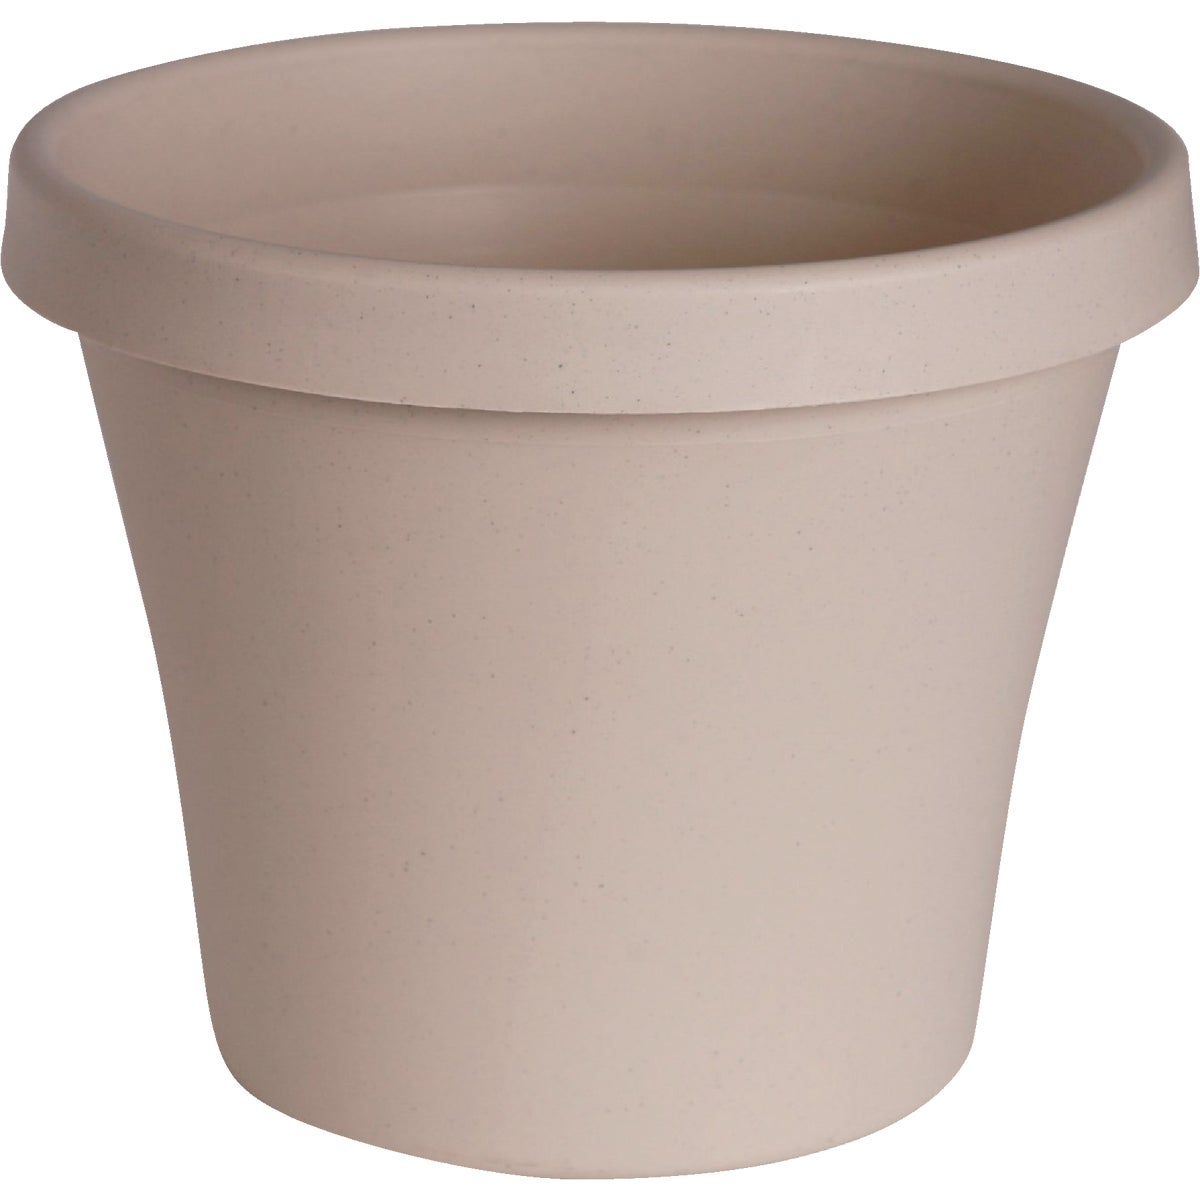 "12"" PEPRSTONE POLY POT - 50612 by Fiskars Brands Inc"